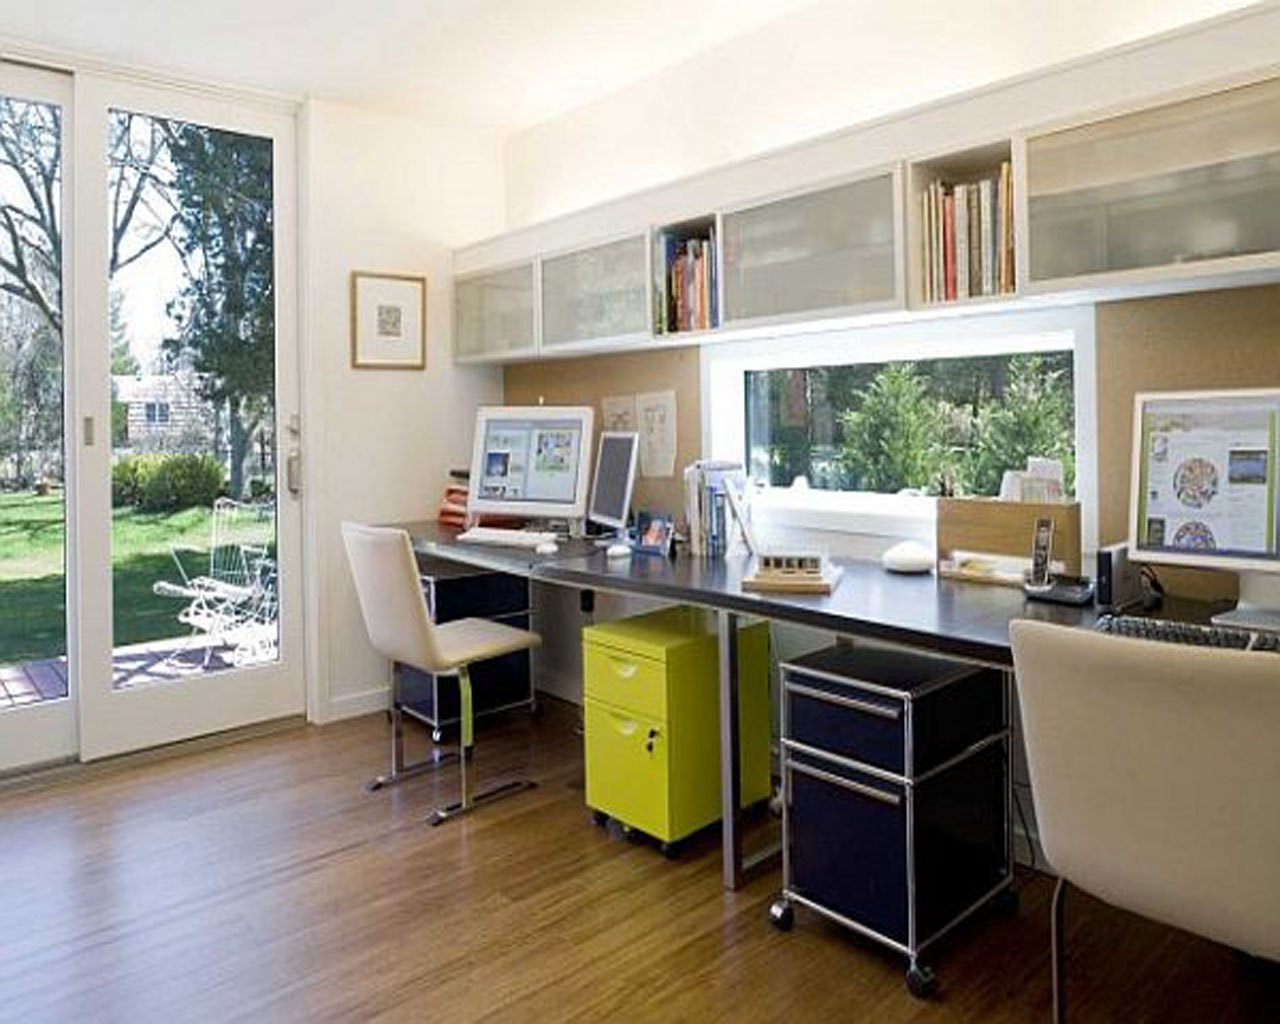 Home office design ideas on a budget dream house experience - Home office design ...